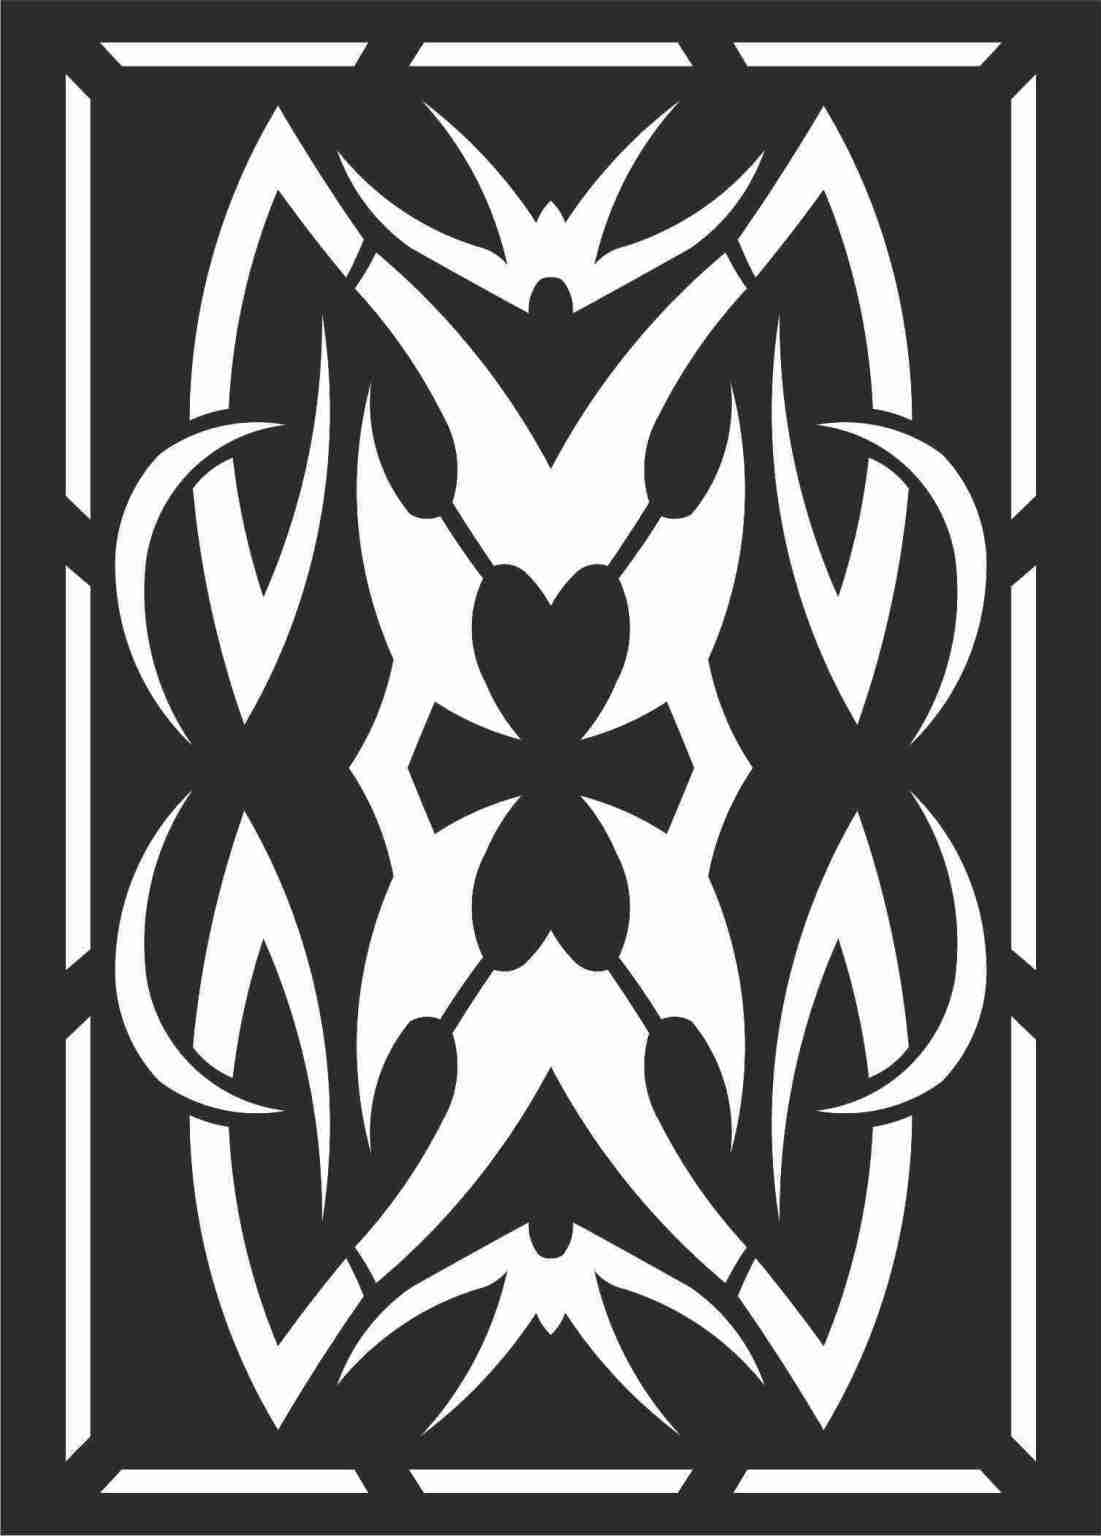 Decorative Screen Patterns For Laser Cutting 111 Free DXF File